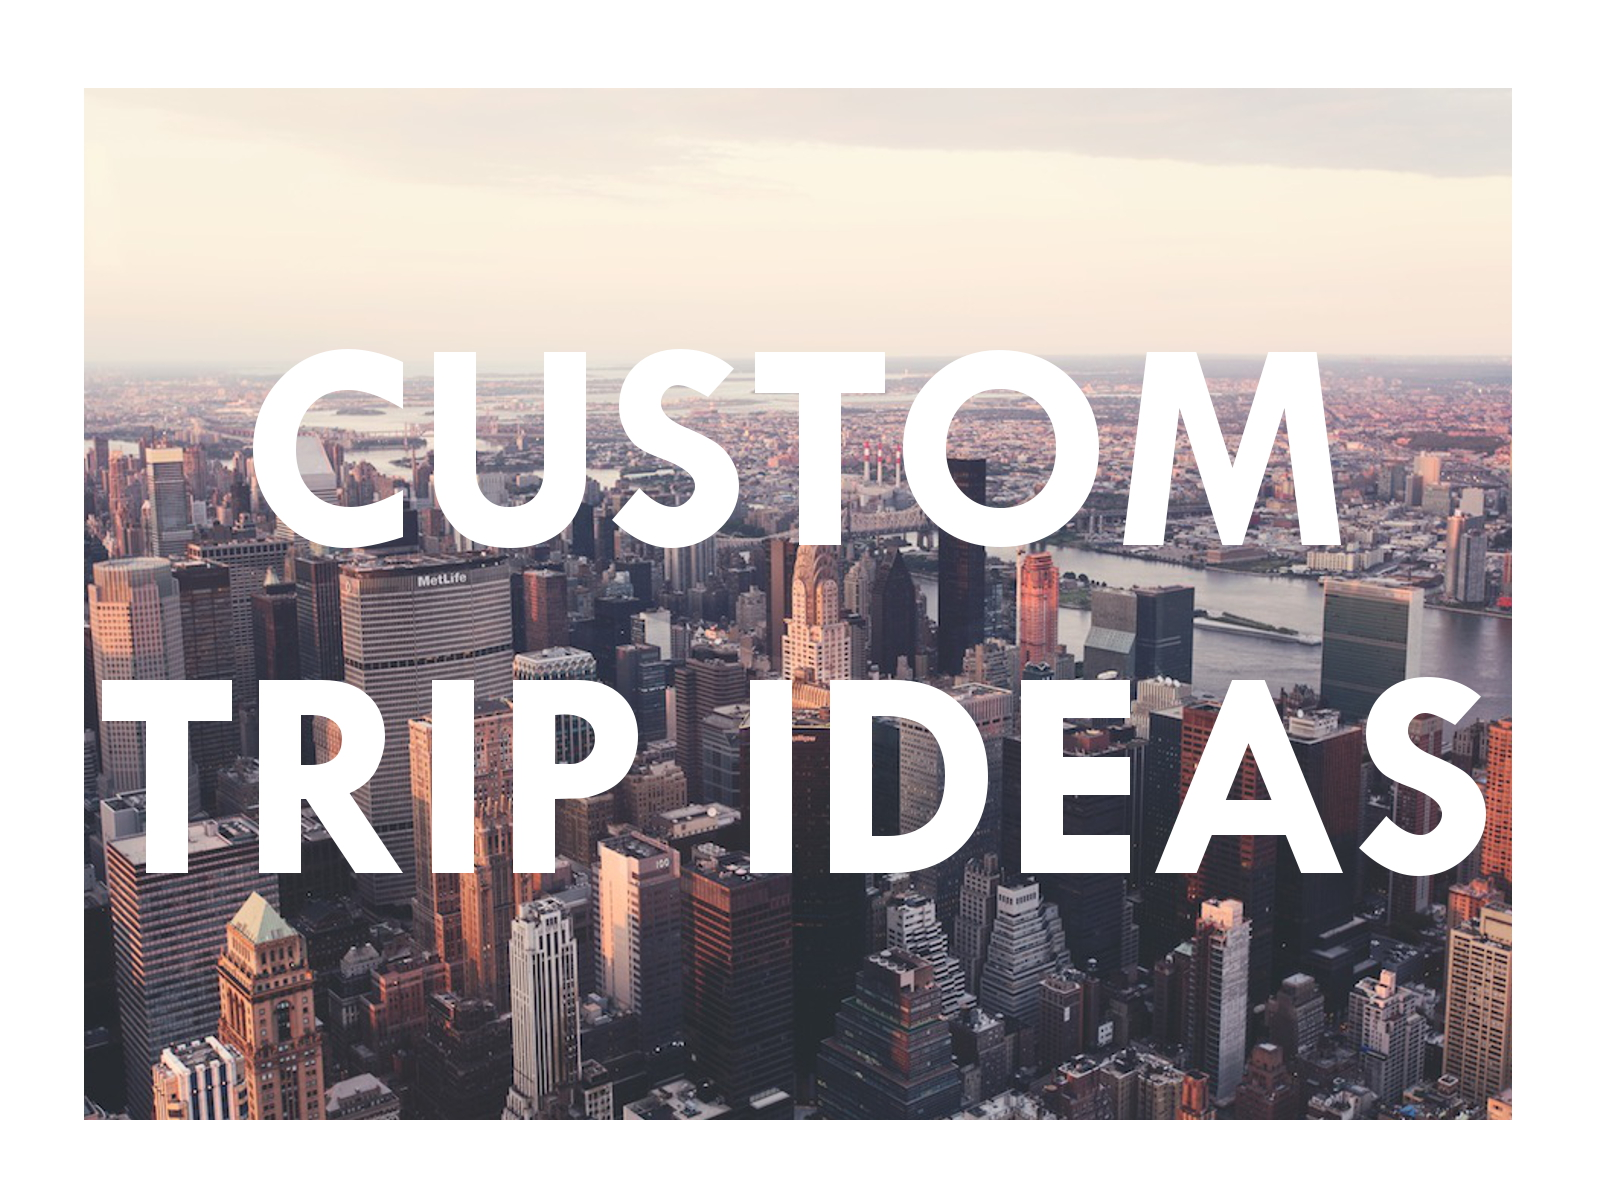 Just a few possibilities for day trips in NYC